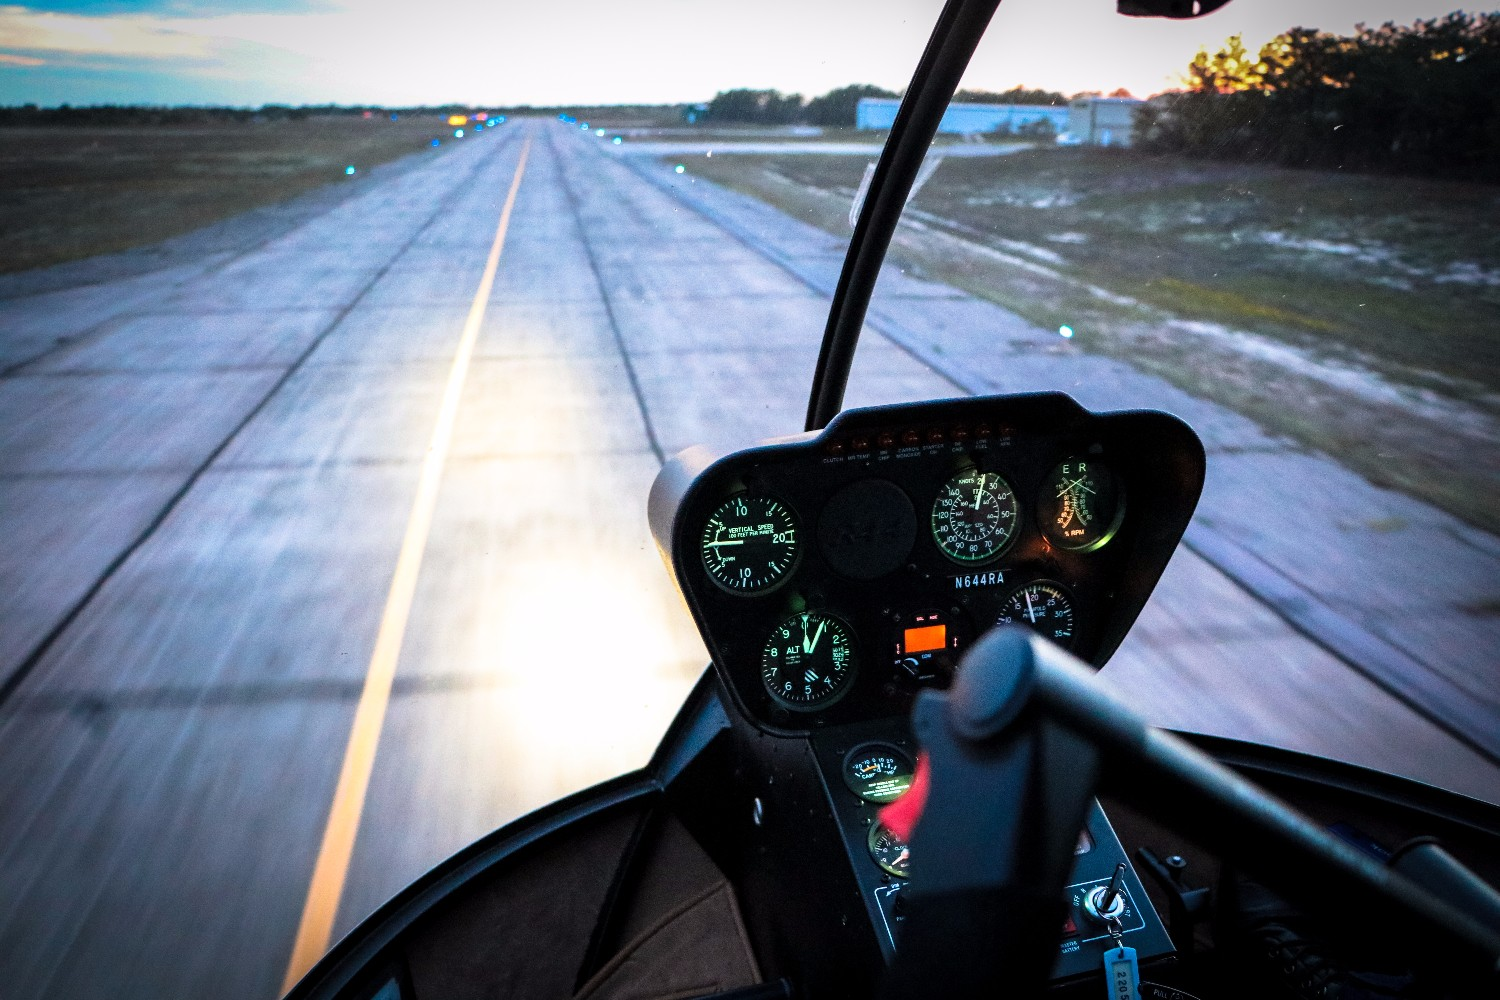 Certified Flight Instructor Course